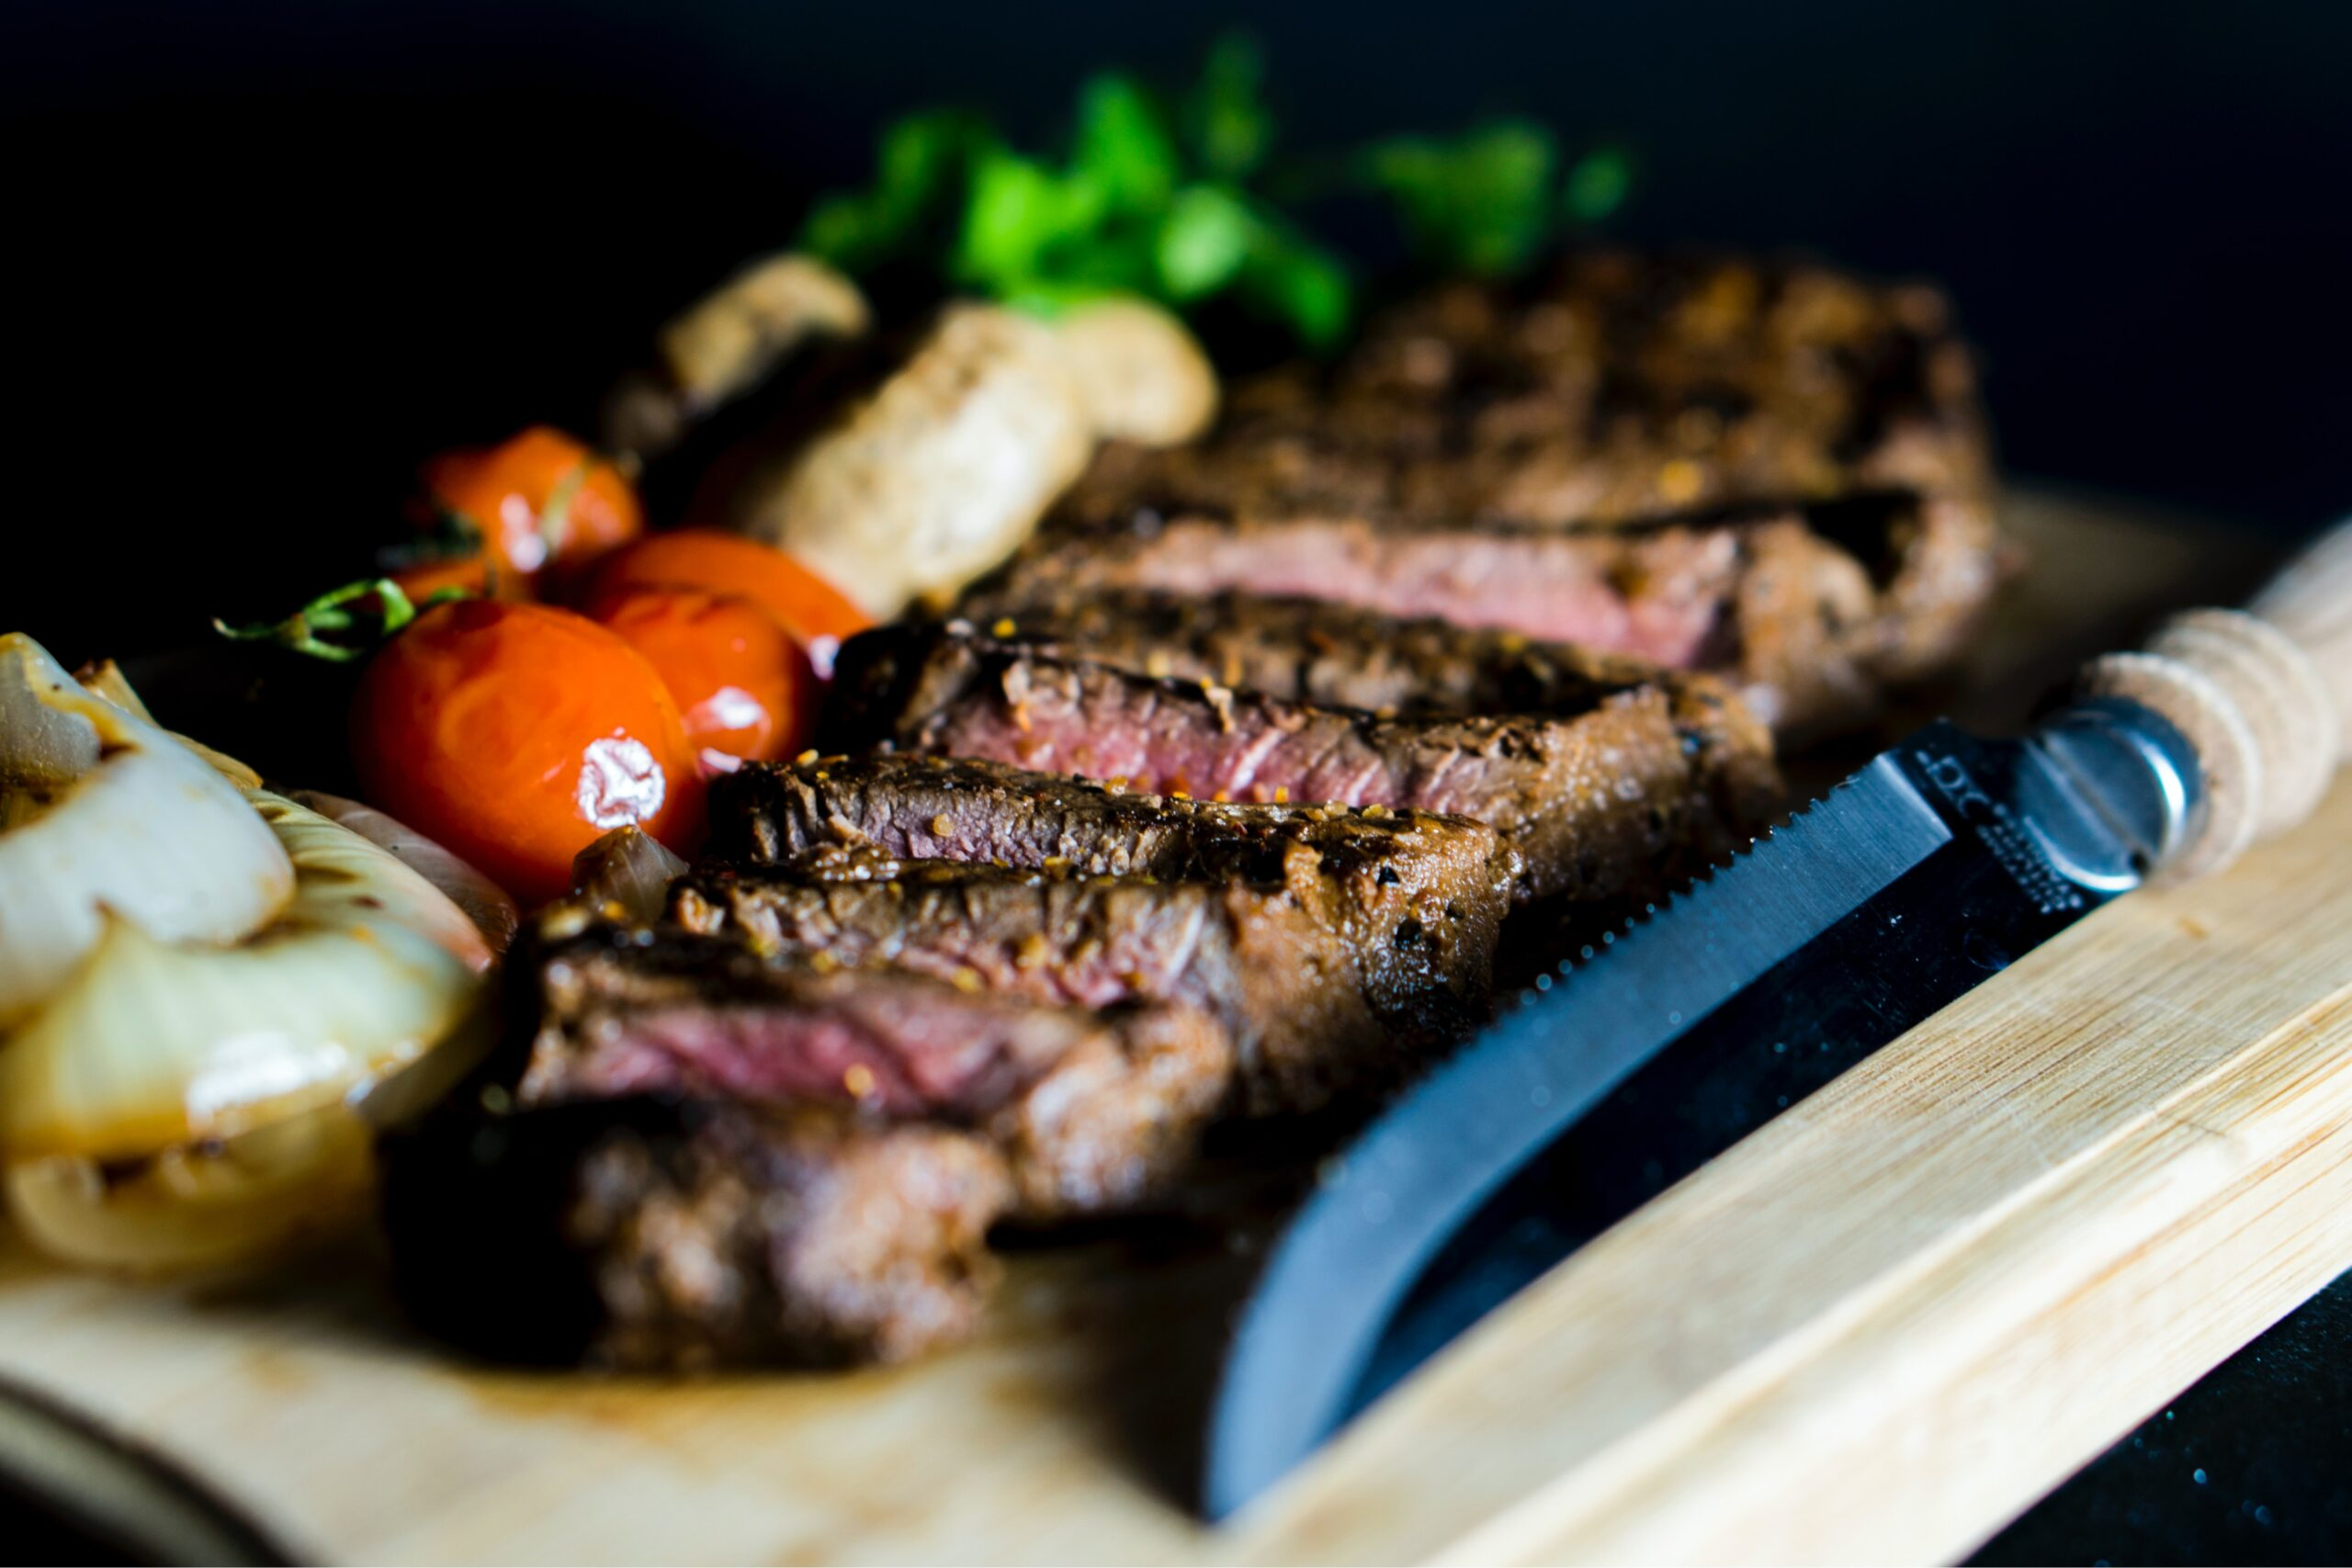 Best Steak Knife Set Under $100